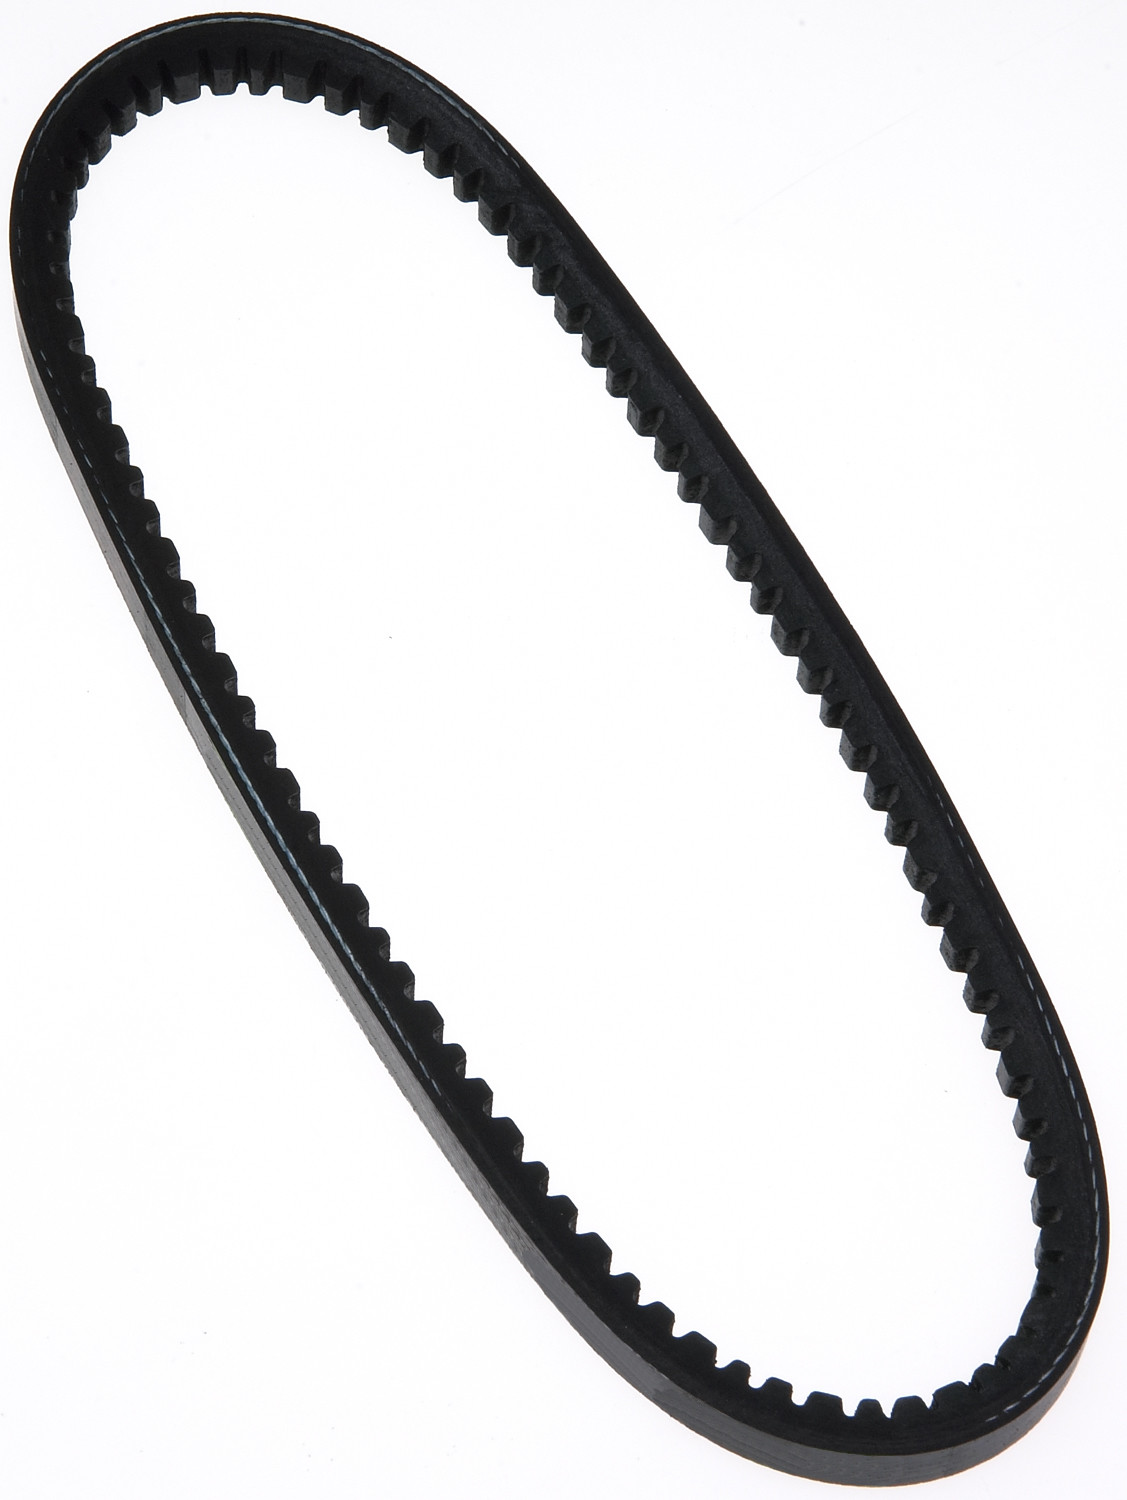 ROADMAX - High Capacity V-belt(standard) - RMX 17380AP